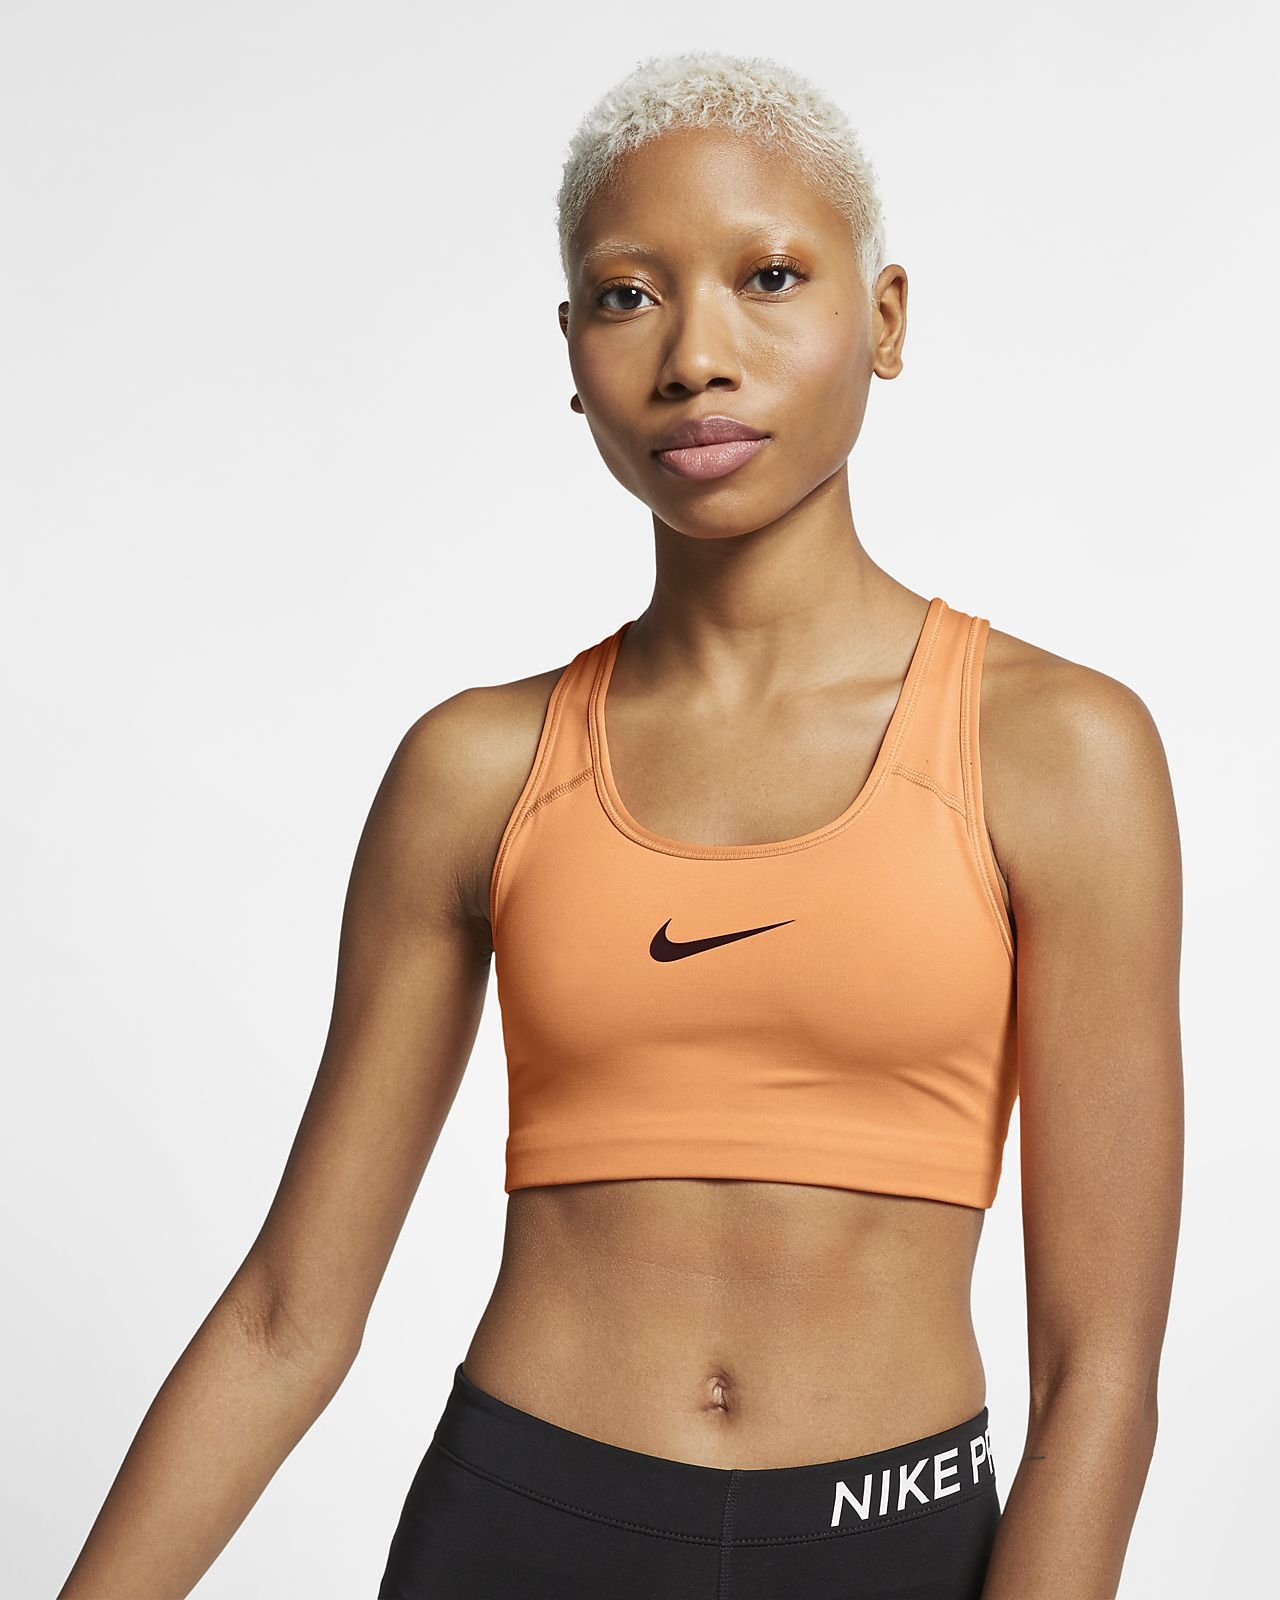 43166ed9c34 Nike Women s Swoosh Medium Support Sports Bra. Nike.com